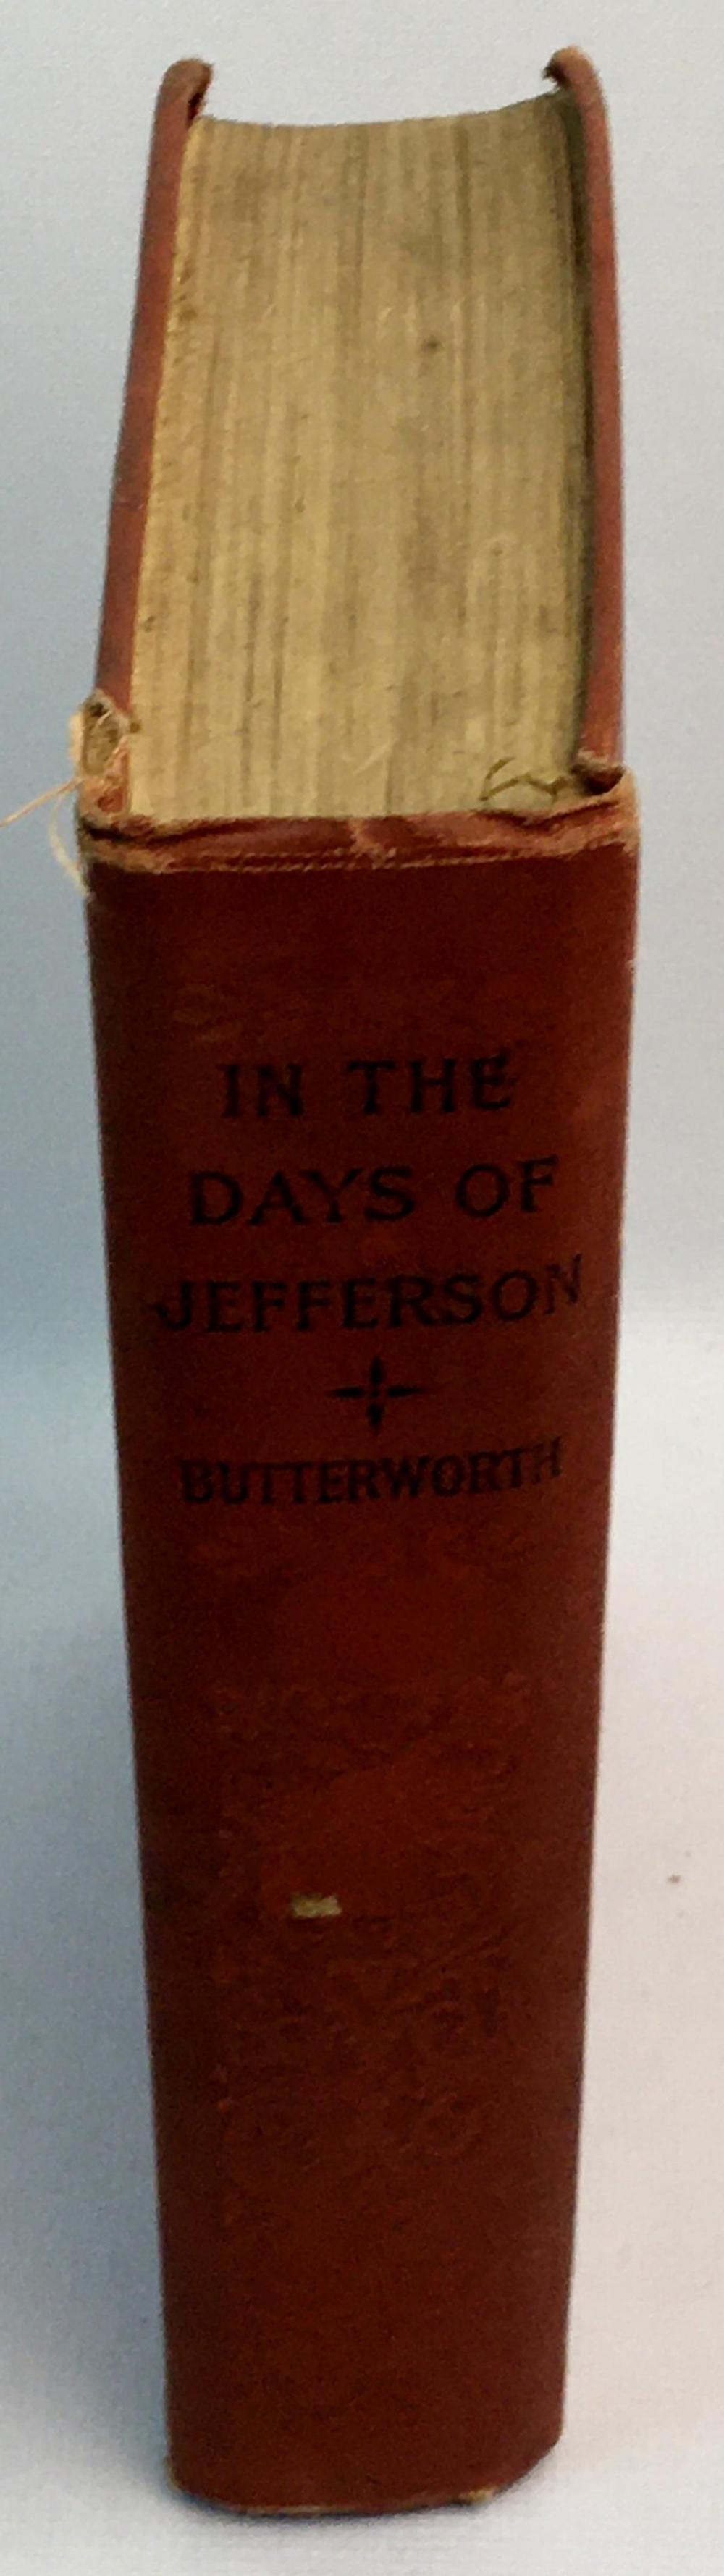 1912 In The Days of Jefferson or The Six Golden Horseshoes: A Tale of Republican Simplicity by Hezekiah Butterworth